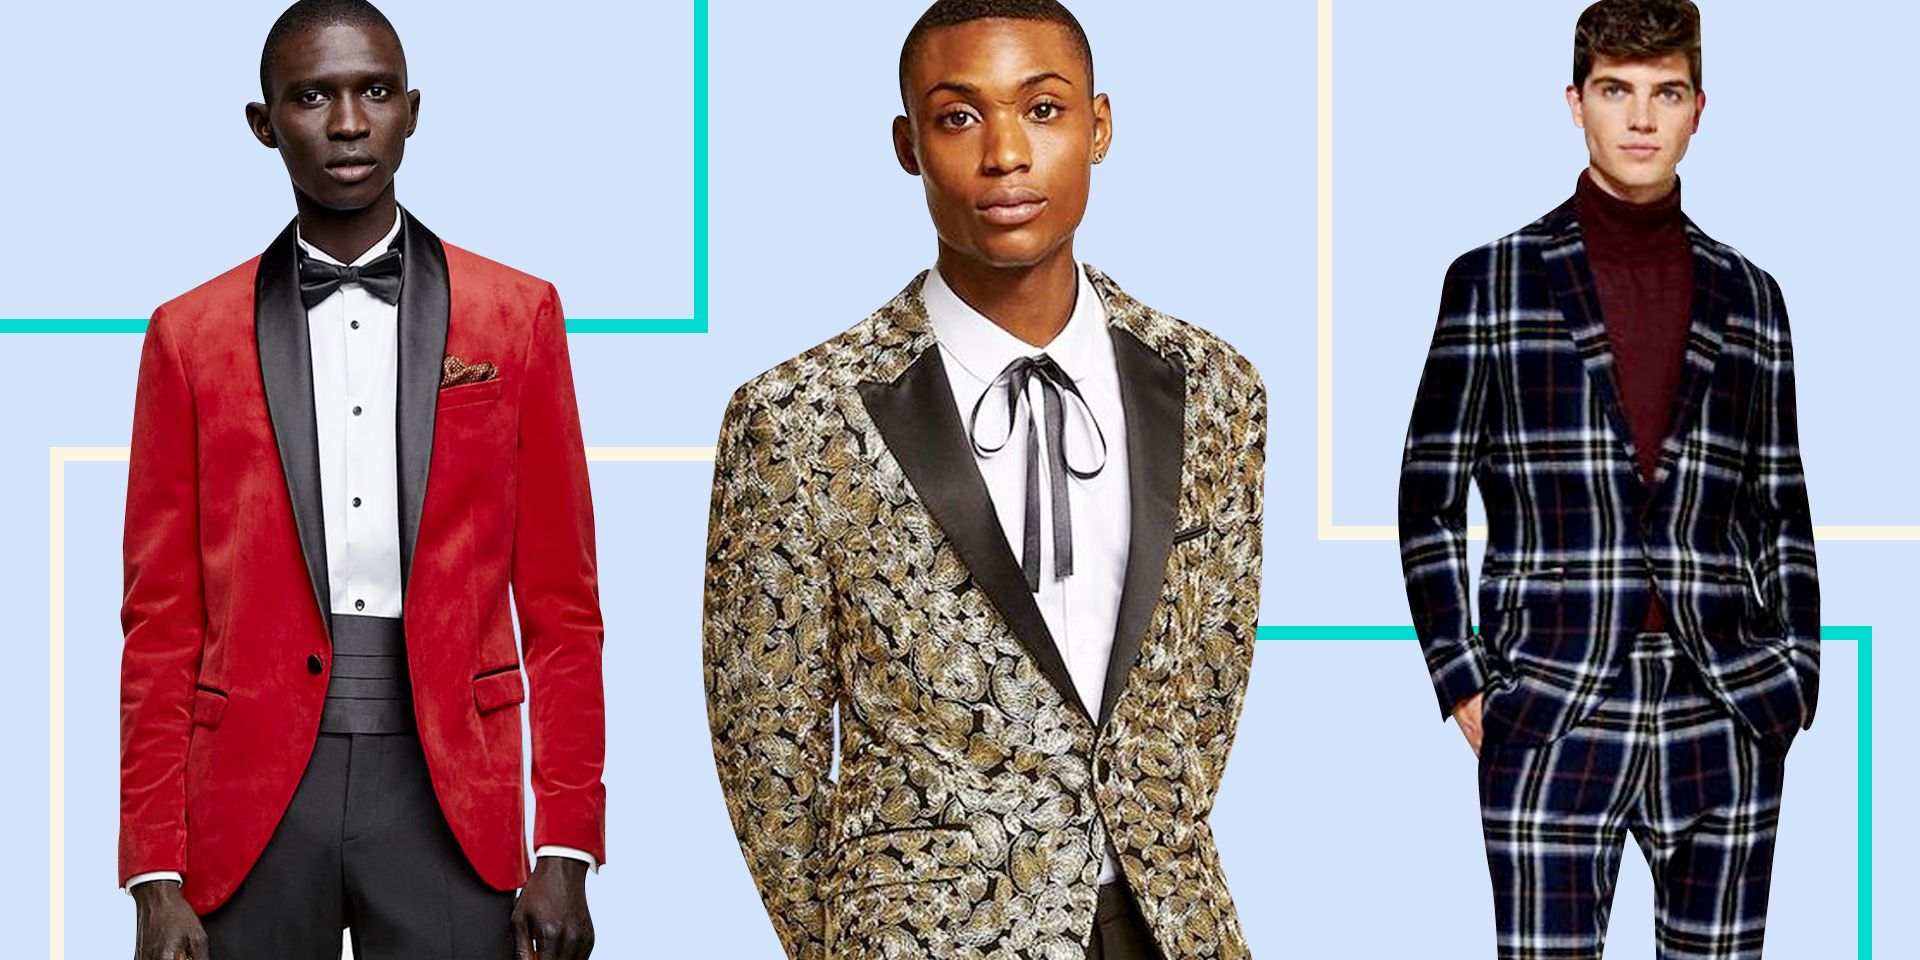 c8b303e4403e 16 Best Prom Tuxedo and Suit Styles of 2019 - Cool Prom Outfits for Guys